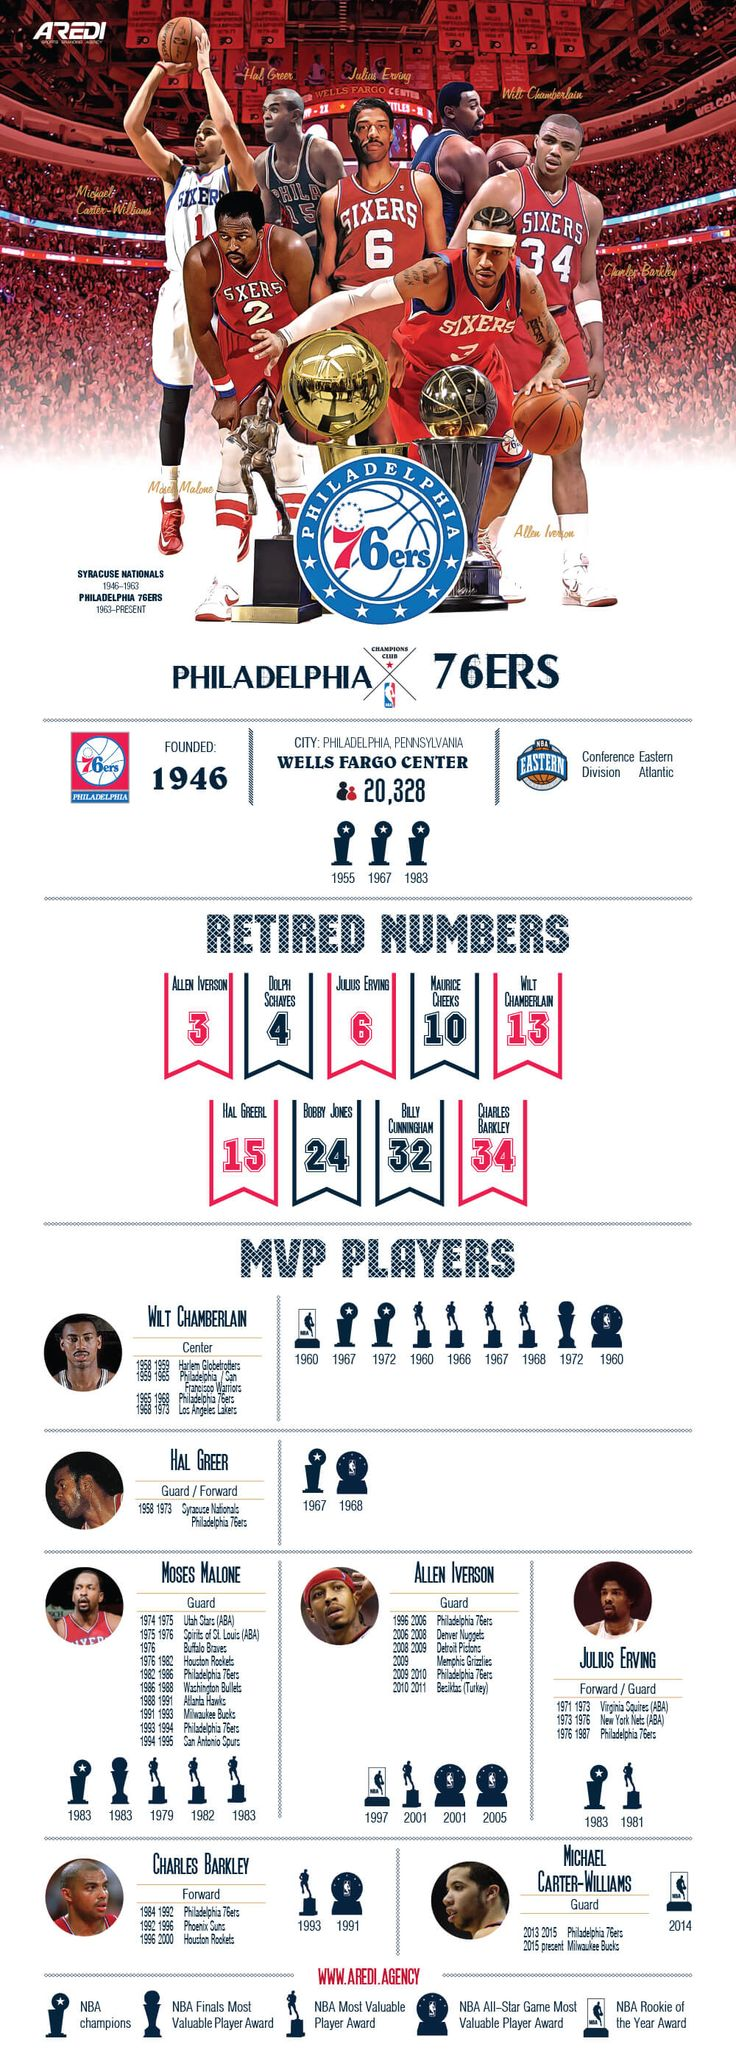 Philadelphia 76ers, Sixers, infographic, art, sport, create, design, basketball, club, champion, branding, NBA, MVP legends, histoty, All Star game, Wilt Chamberlain, Julius Erving, Charles Barkley, Allen Iverson, Michael Carter-Williams, Moses Malone, Hal Greer